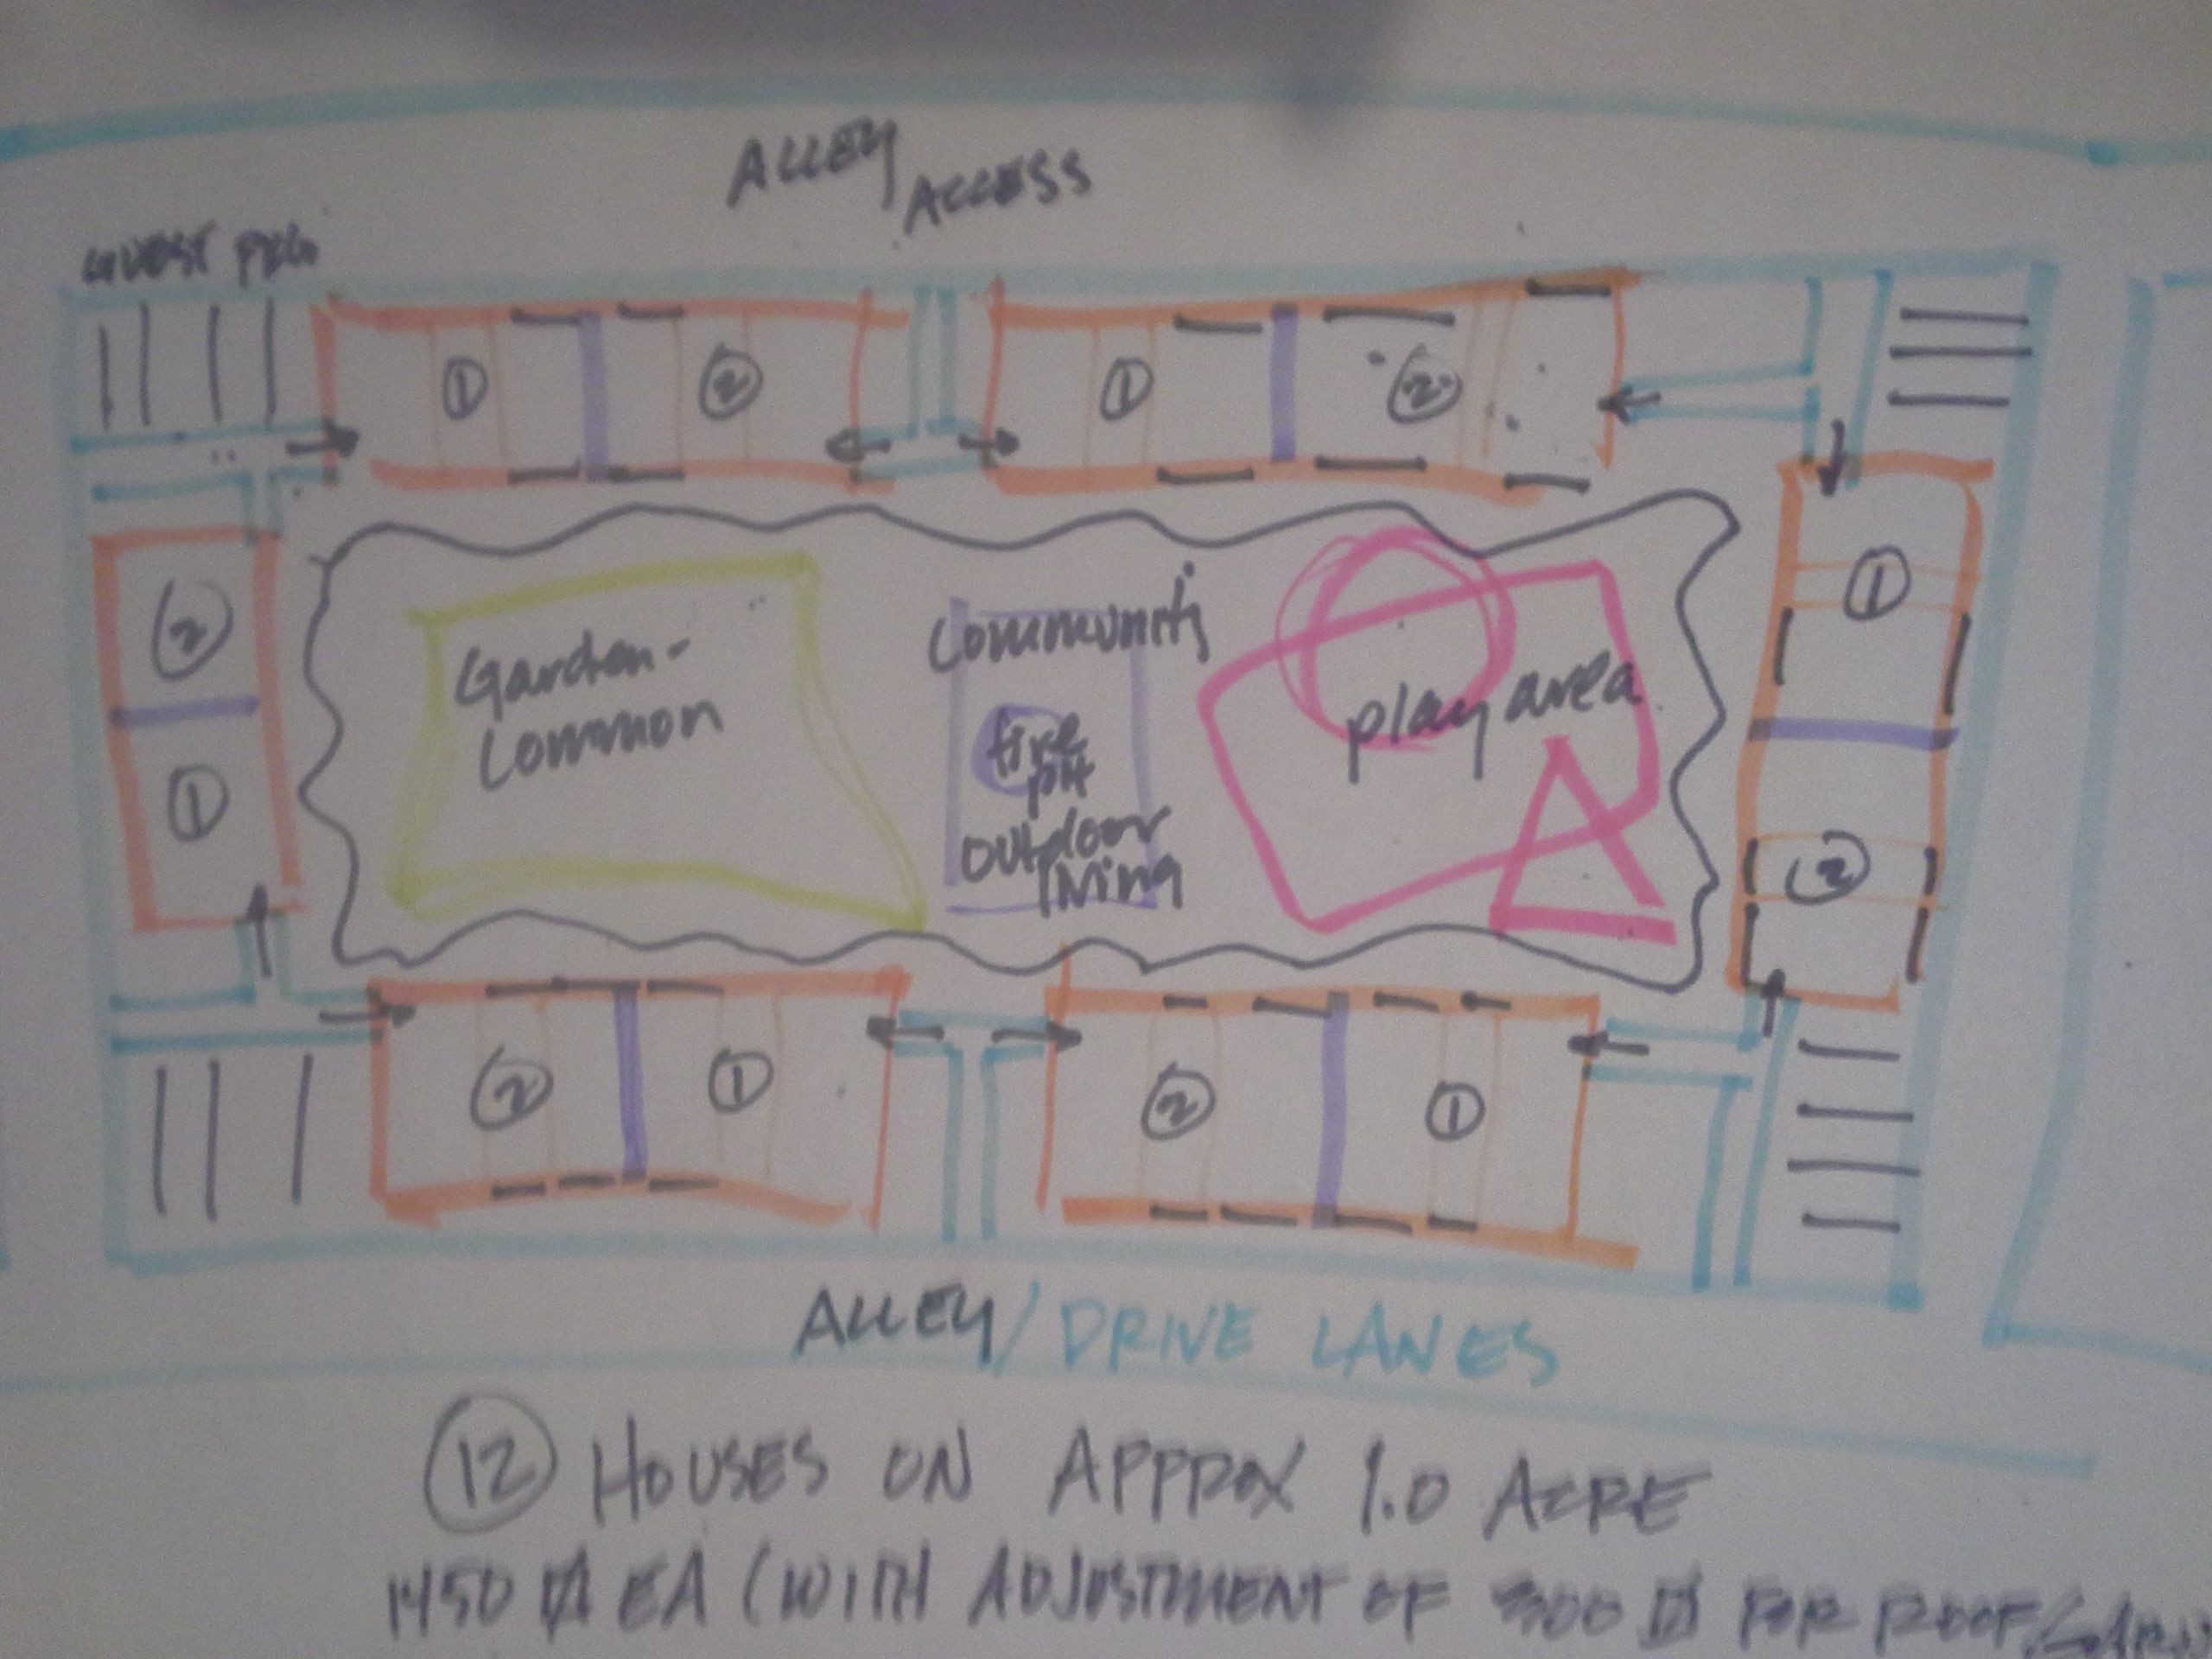 test composite part 3 - this is a site layout for 12 housing units that occupy about 1 acre of land as a possibility to address the integration with other development interests